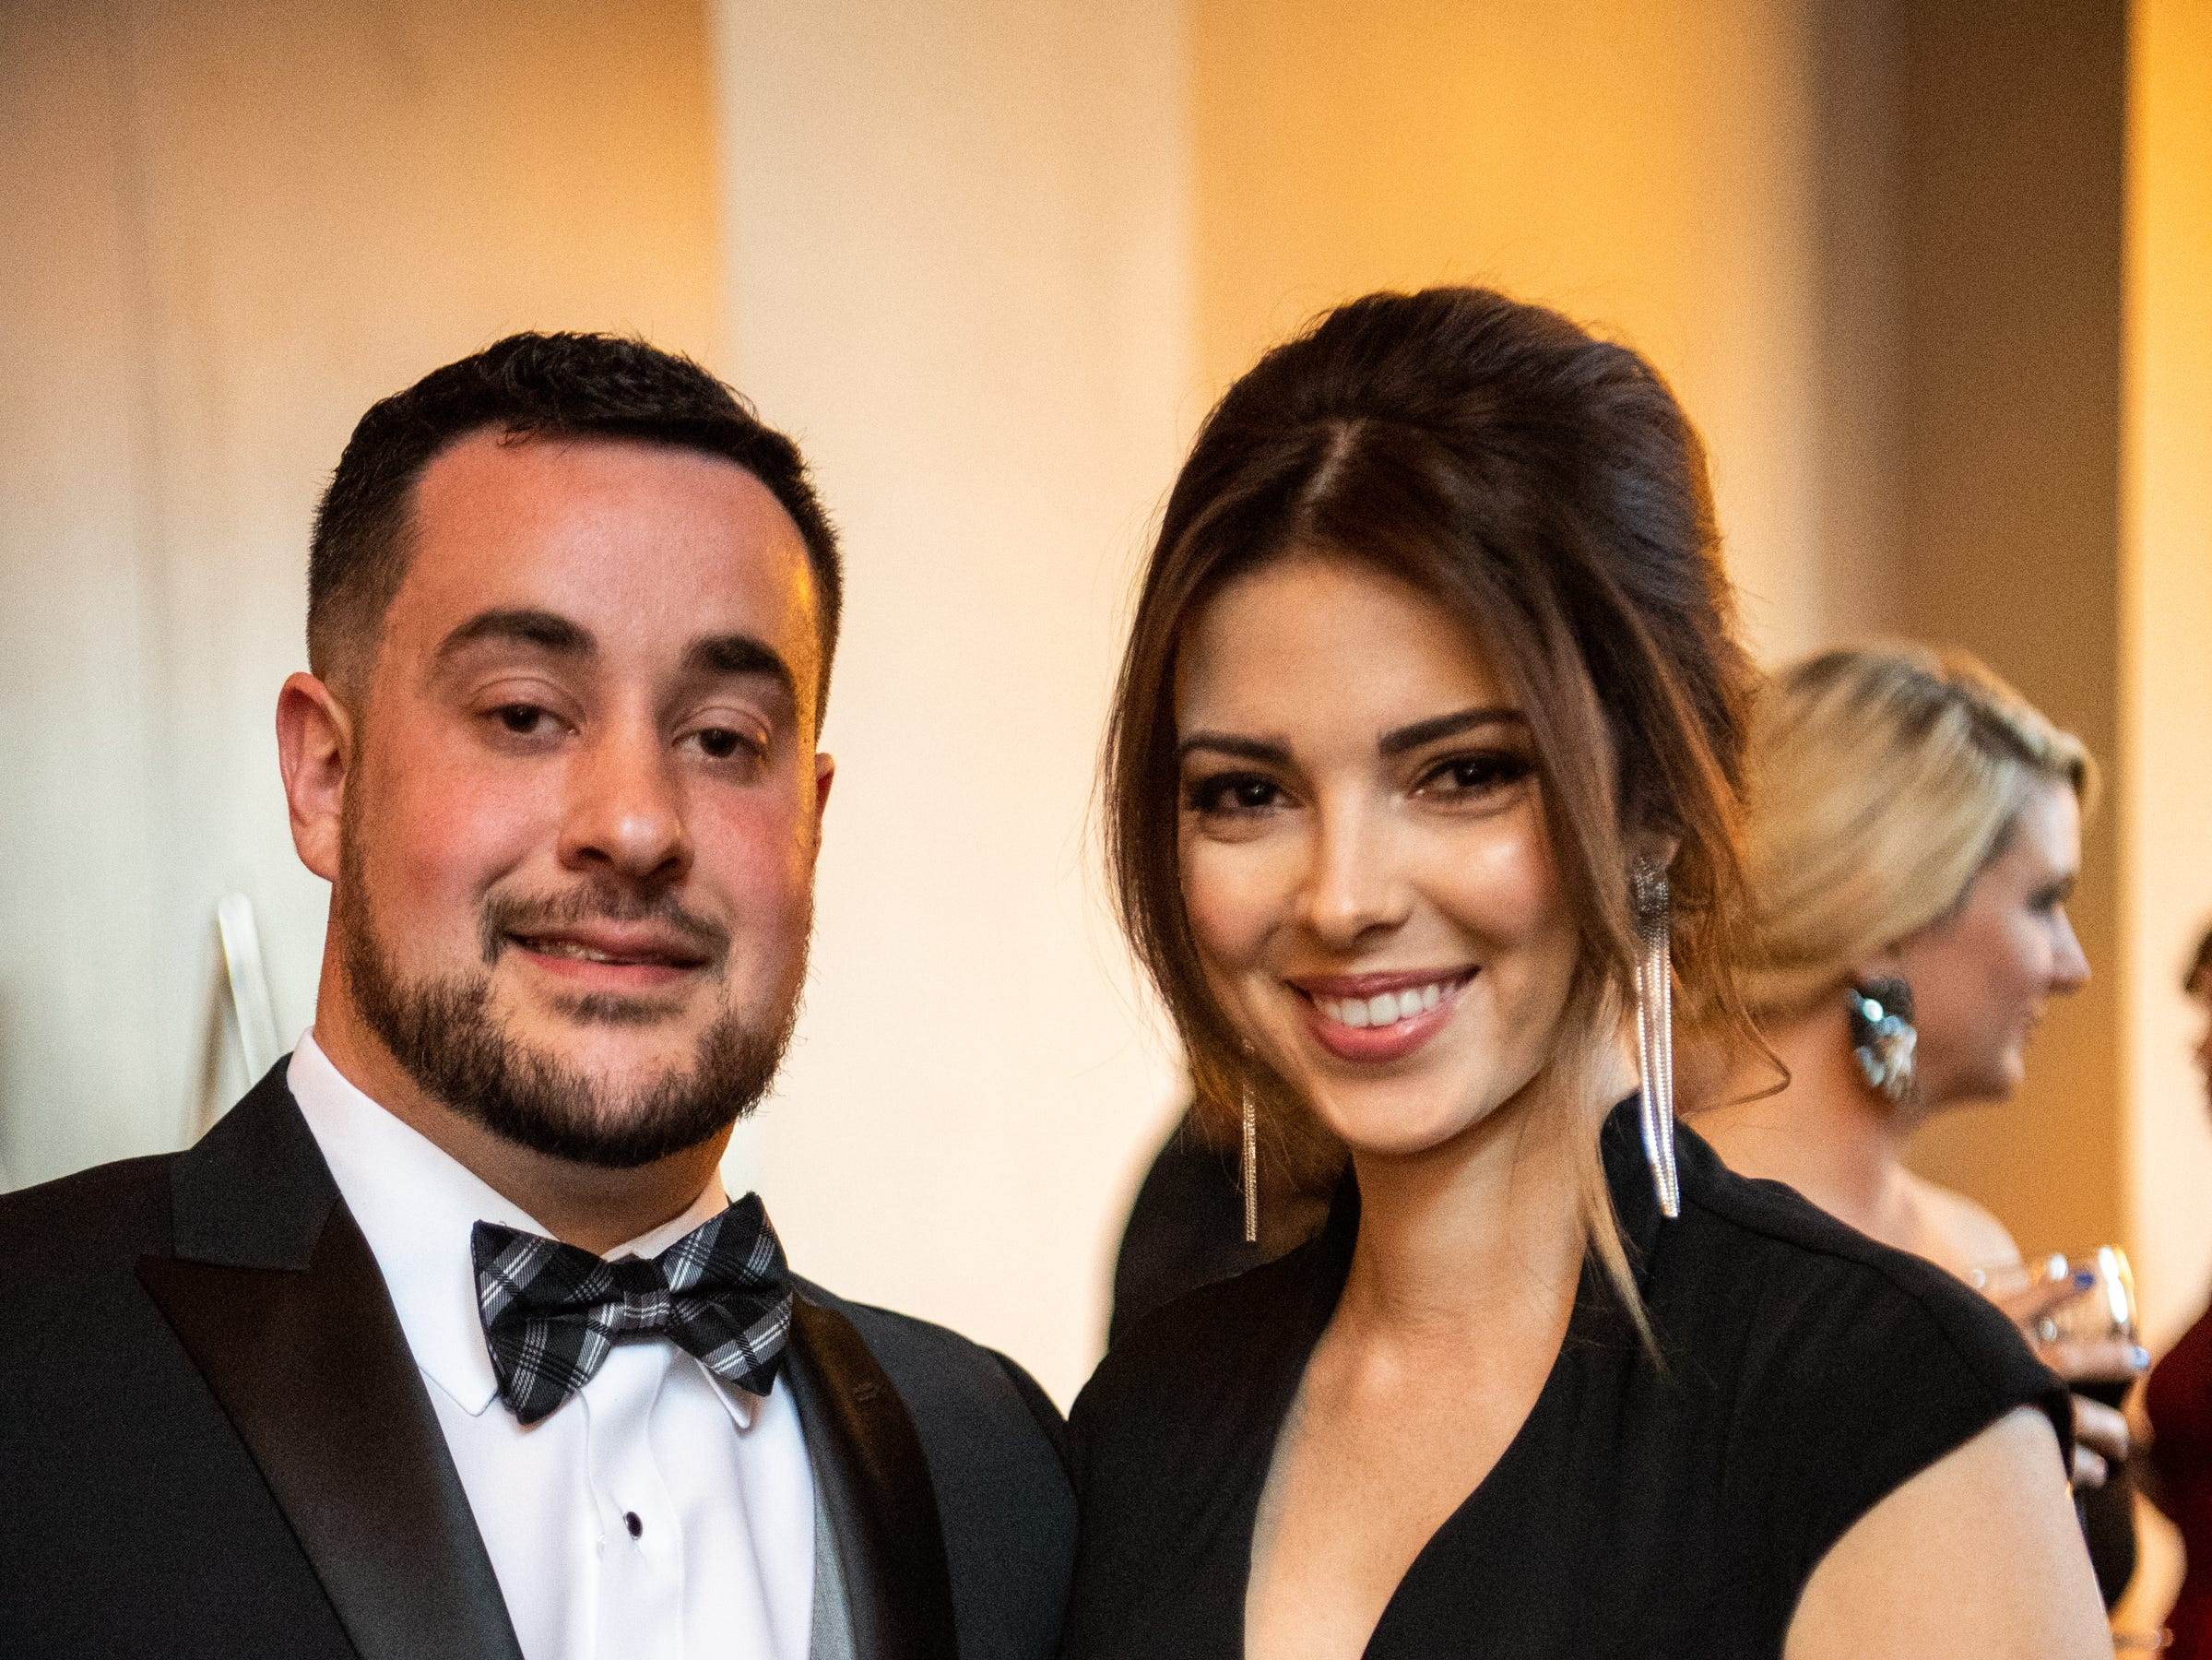 JR and Victoria Miller pose for a photo during Austin Peay State University's annual Candlelight Ball at the Omni Nashville Hotel Saturday, March 16, 2019, in Nashville, Tenn.